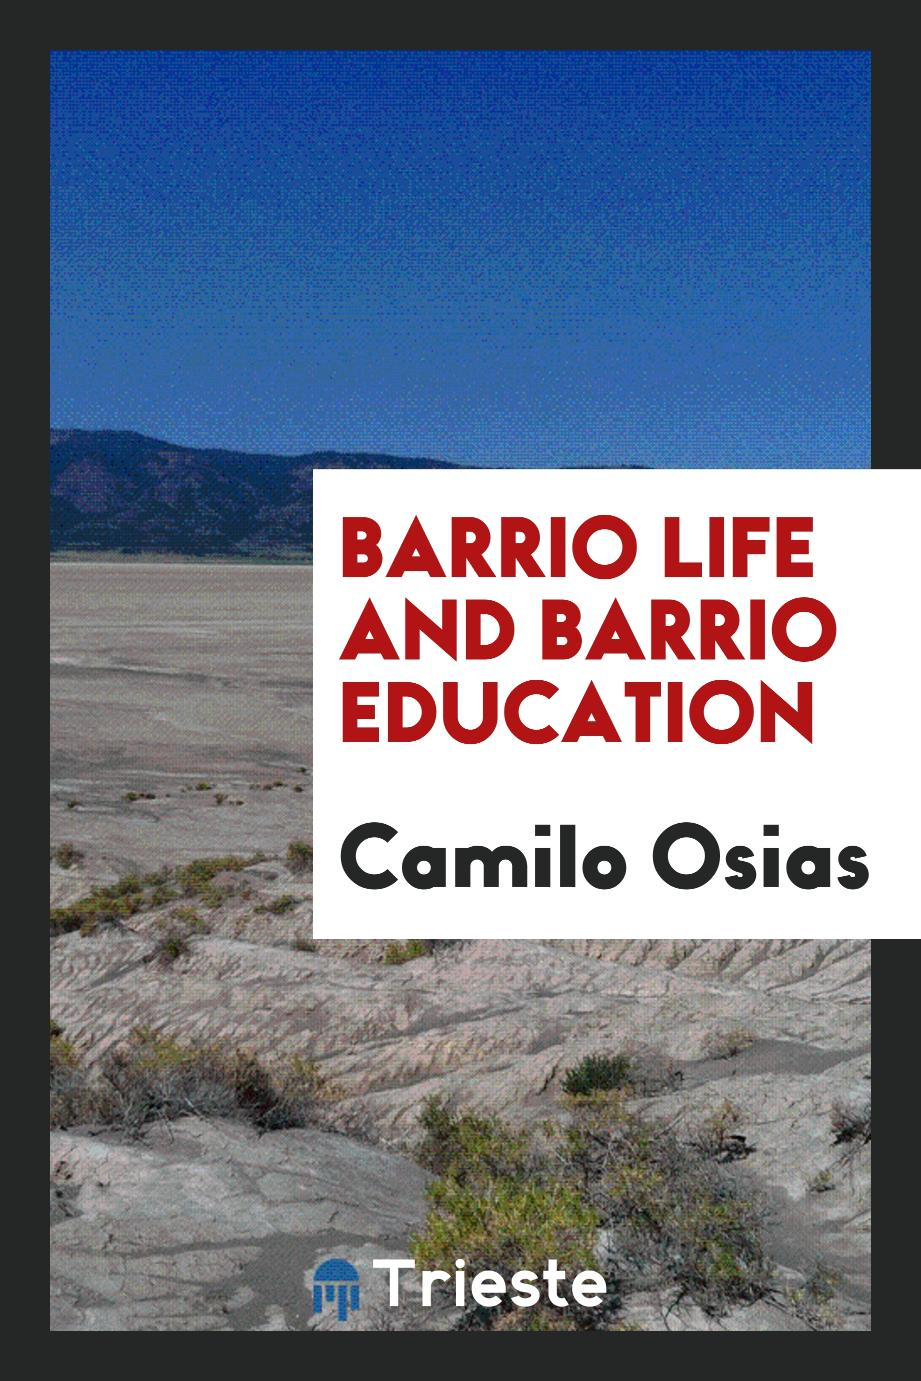 Barrio Life and Barrio Education